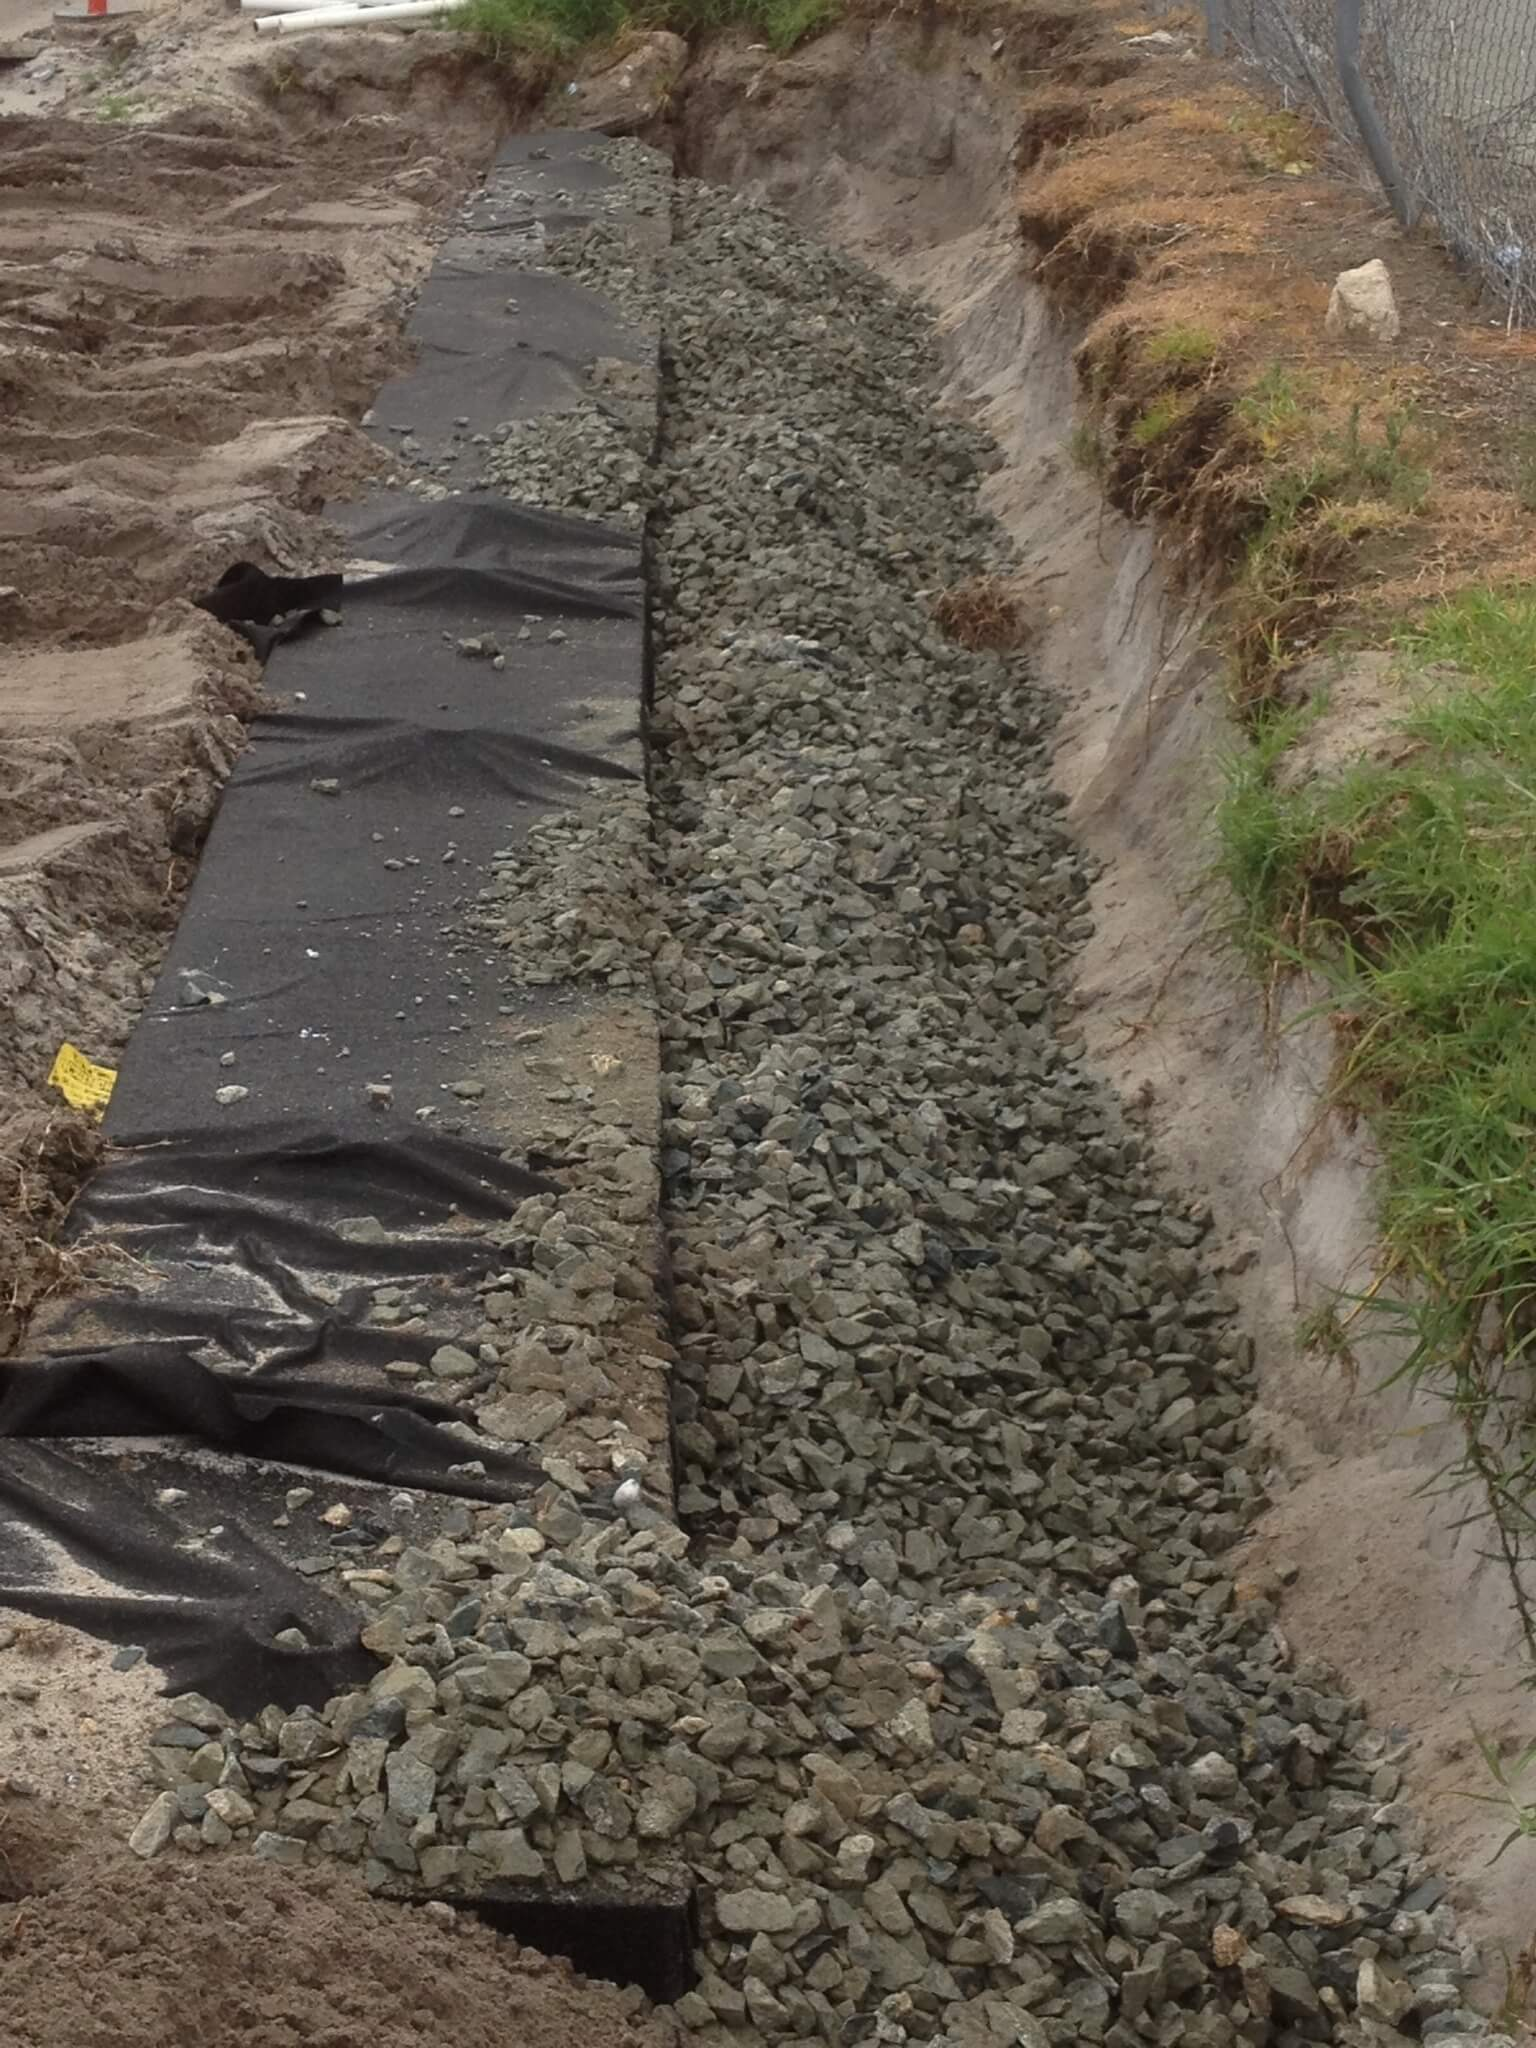 Everyday Plumbers Residential New Leach Drain Backfilling - Putting Gravel 2178